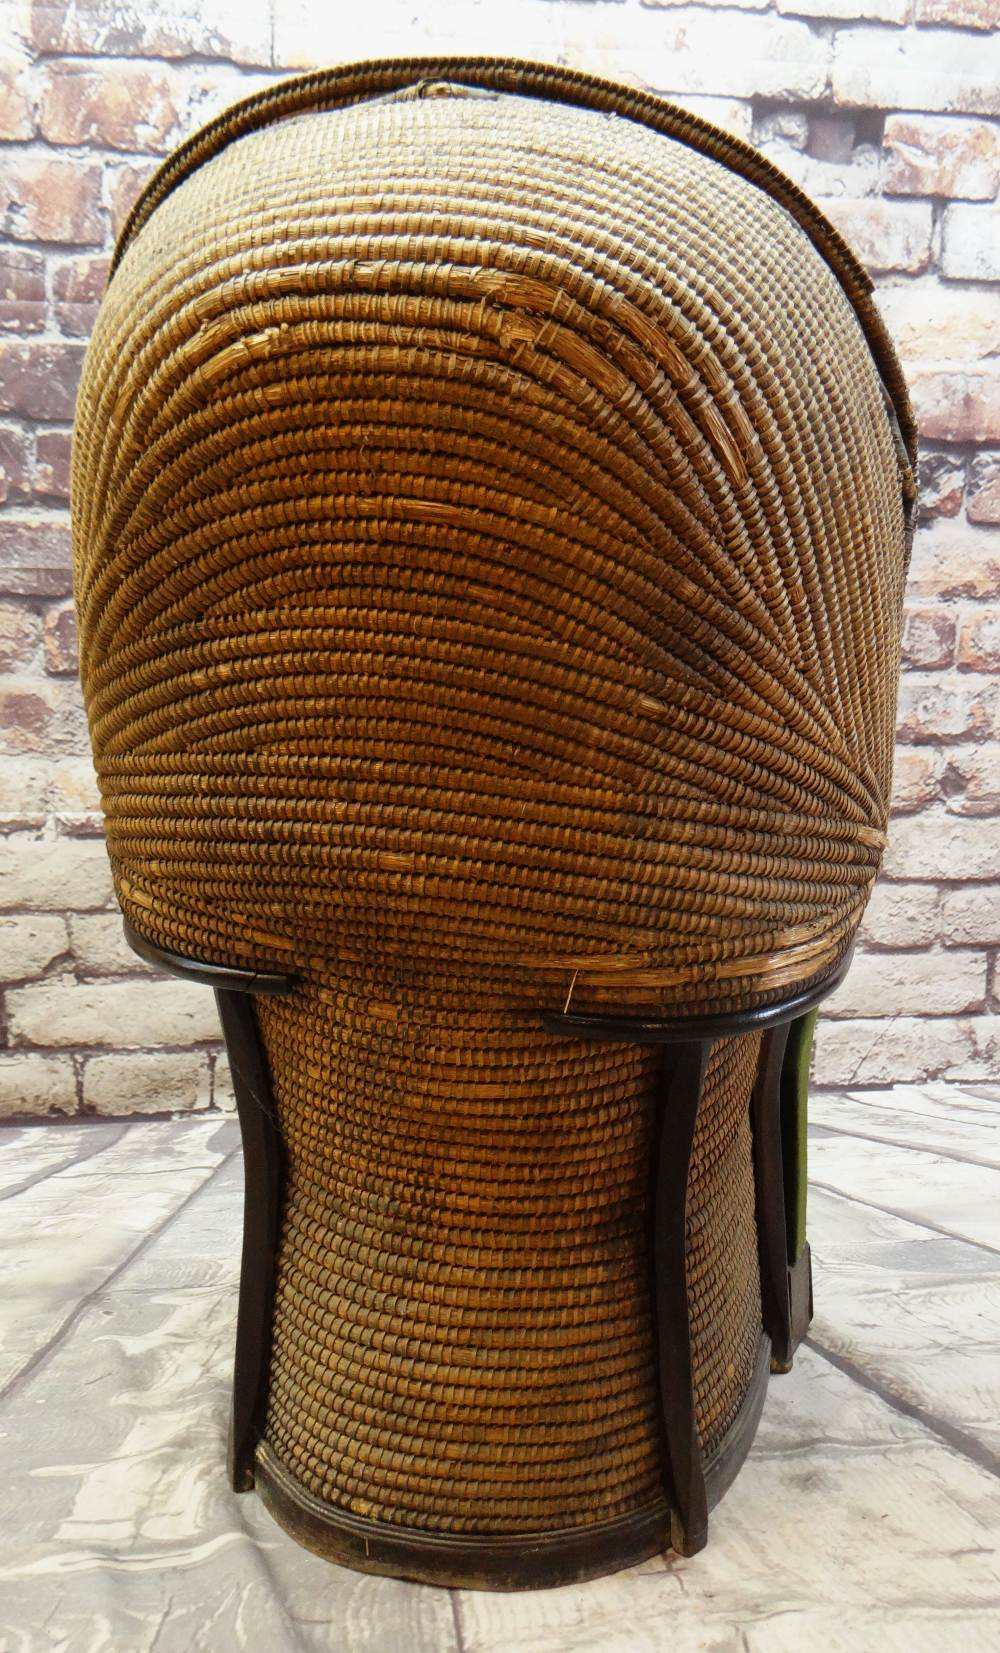 A RARE 19TH CENTURY MONMOUTHSHIRE LIPWORK BEEHIVE ARMCHAIR of wicker composition, wooden structure - Image 3 of 6